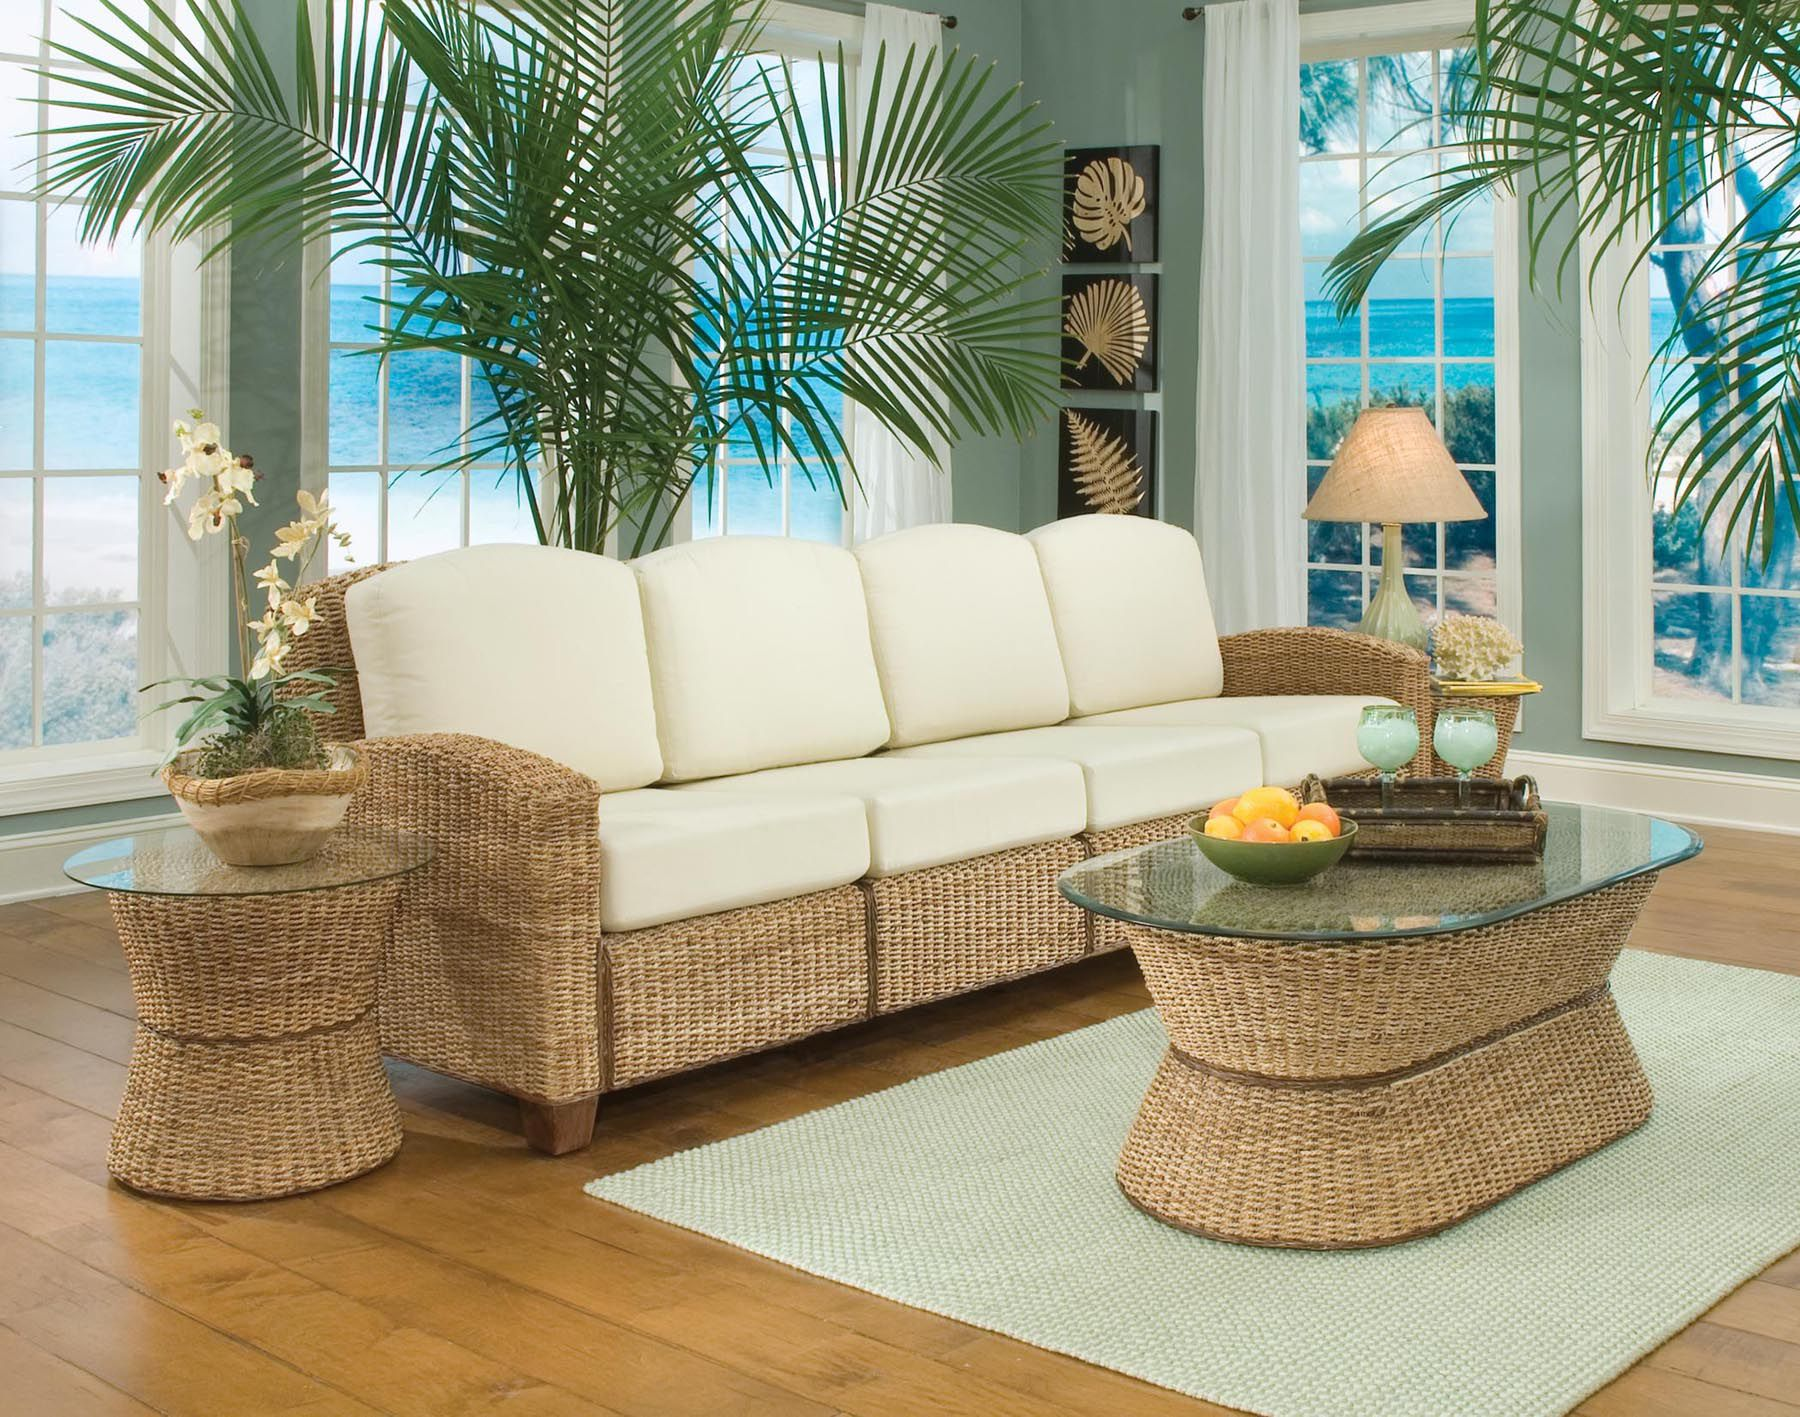 Home Styles Cabana 4 Section Sofa Honey Oak Finish